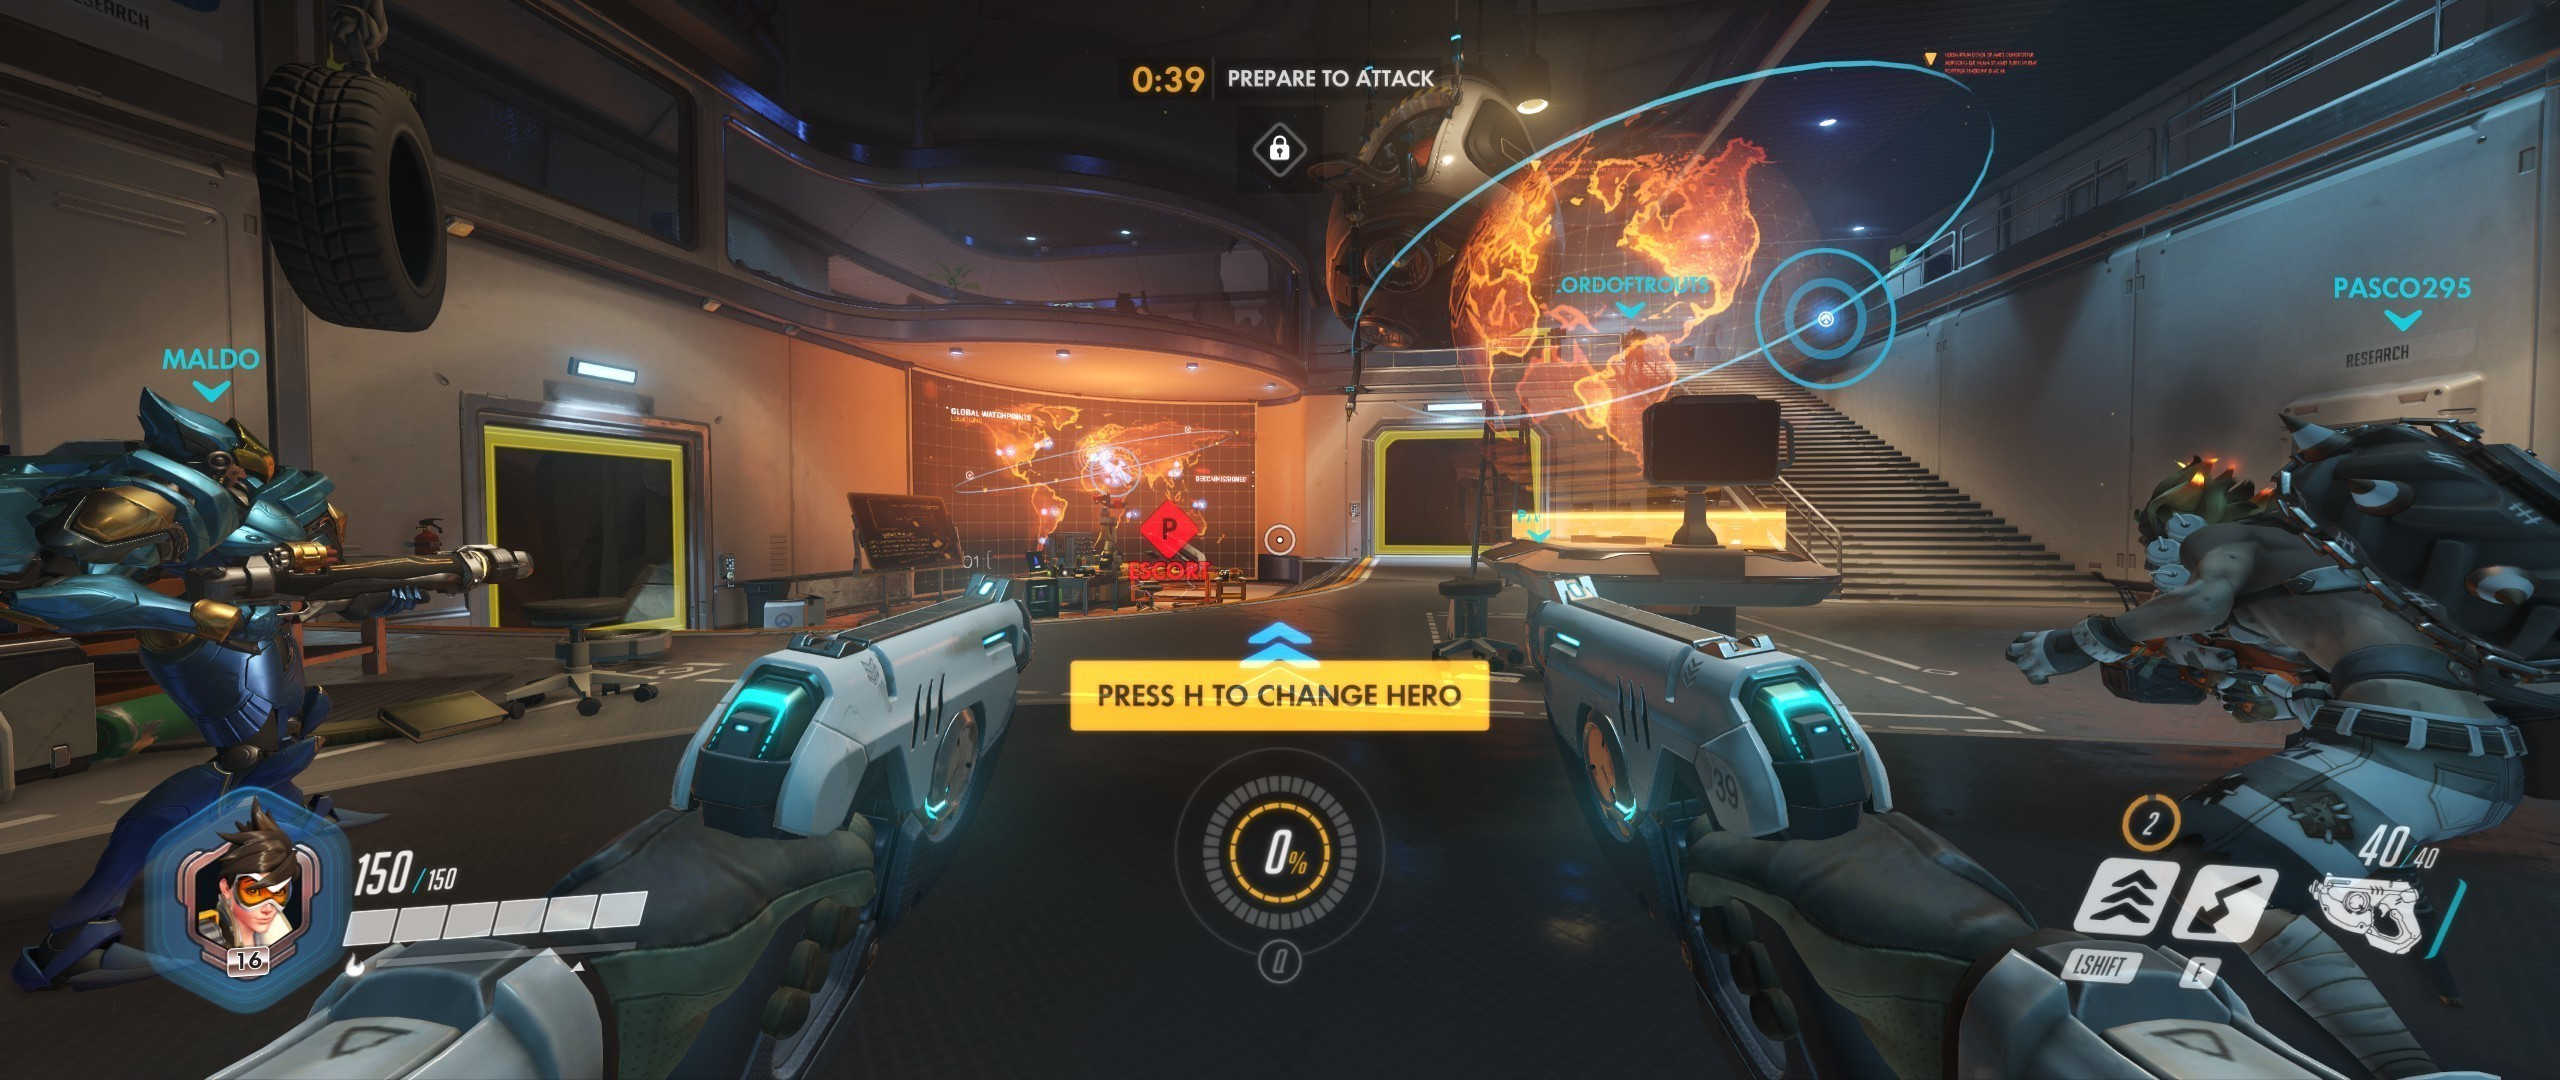 Gamers enraged after Blizzard strips 21:9 resolutions from